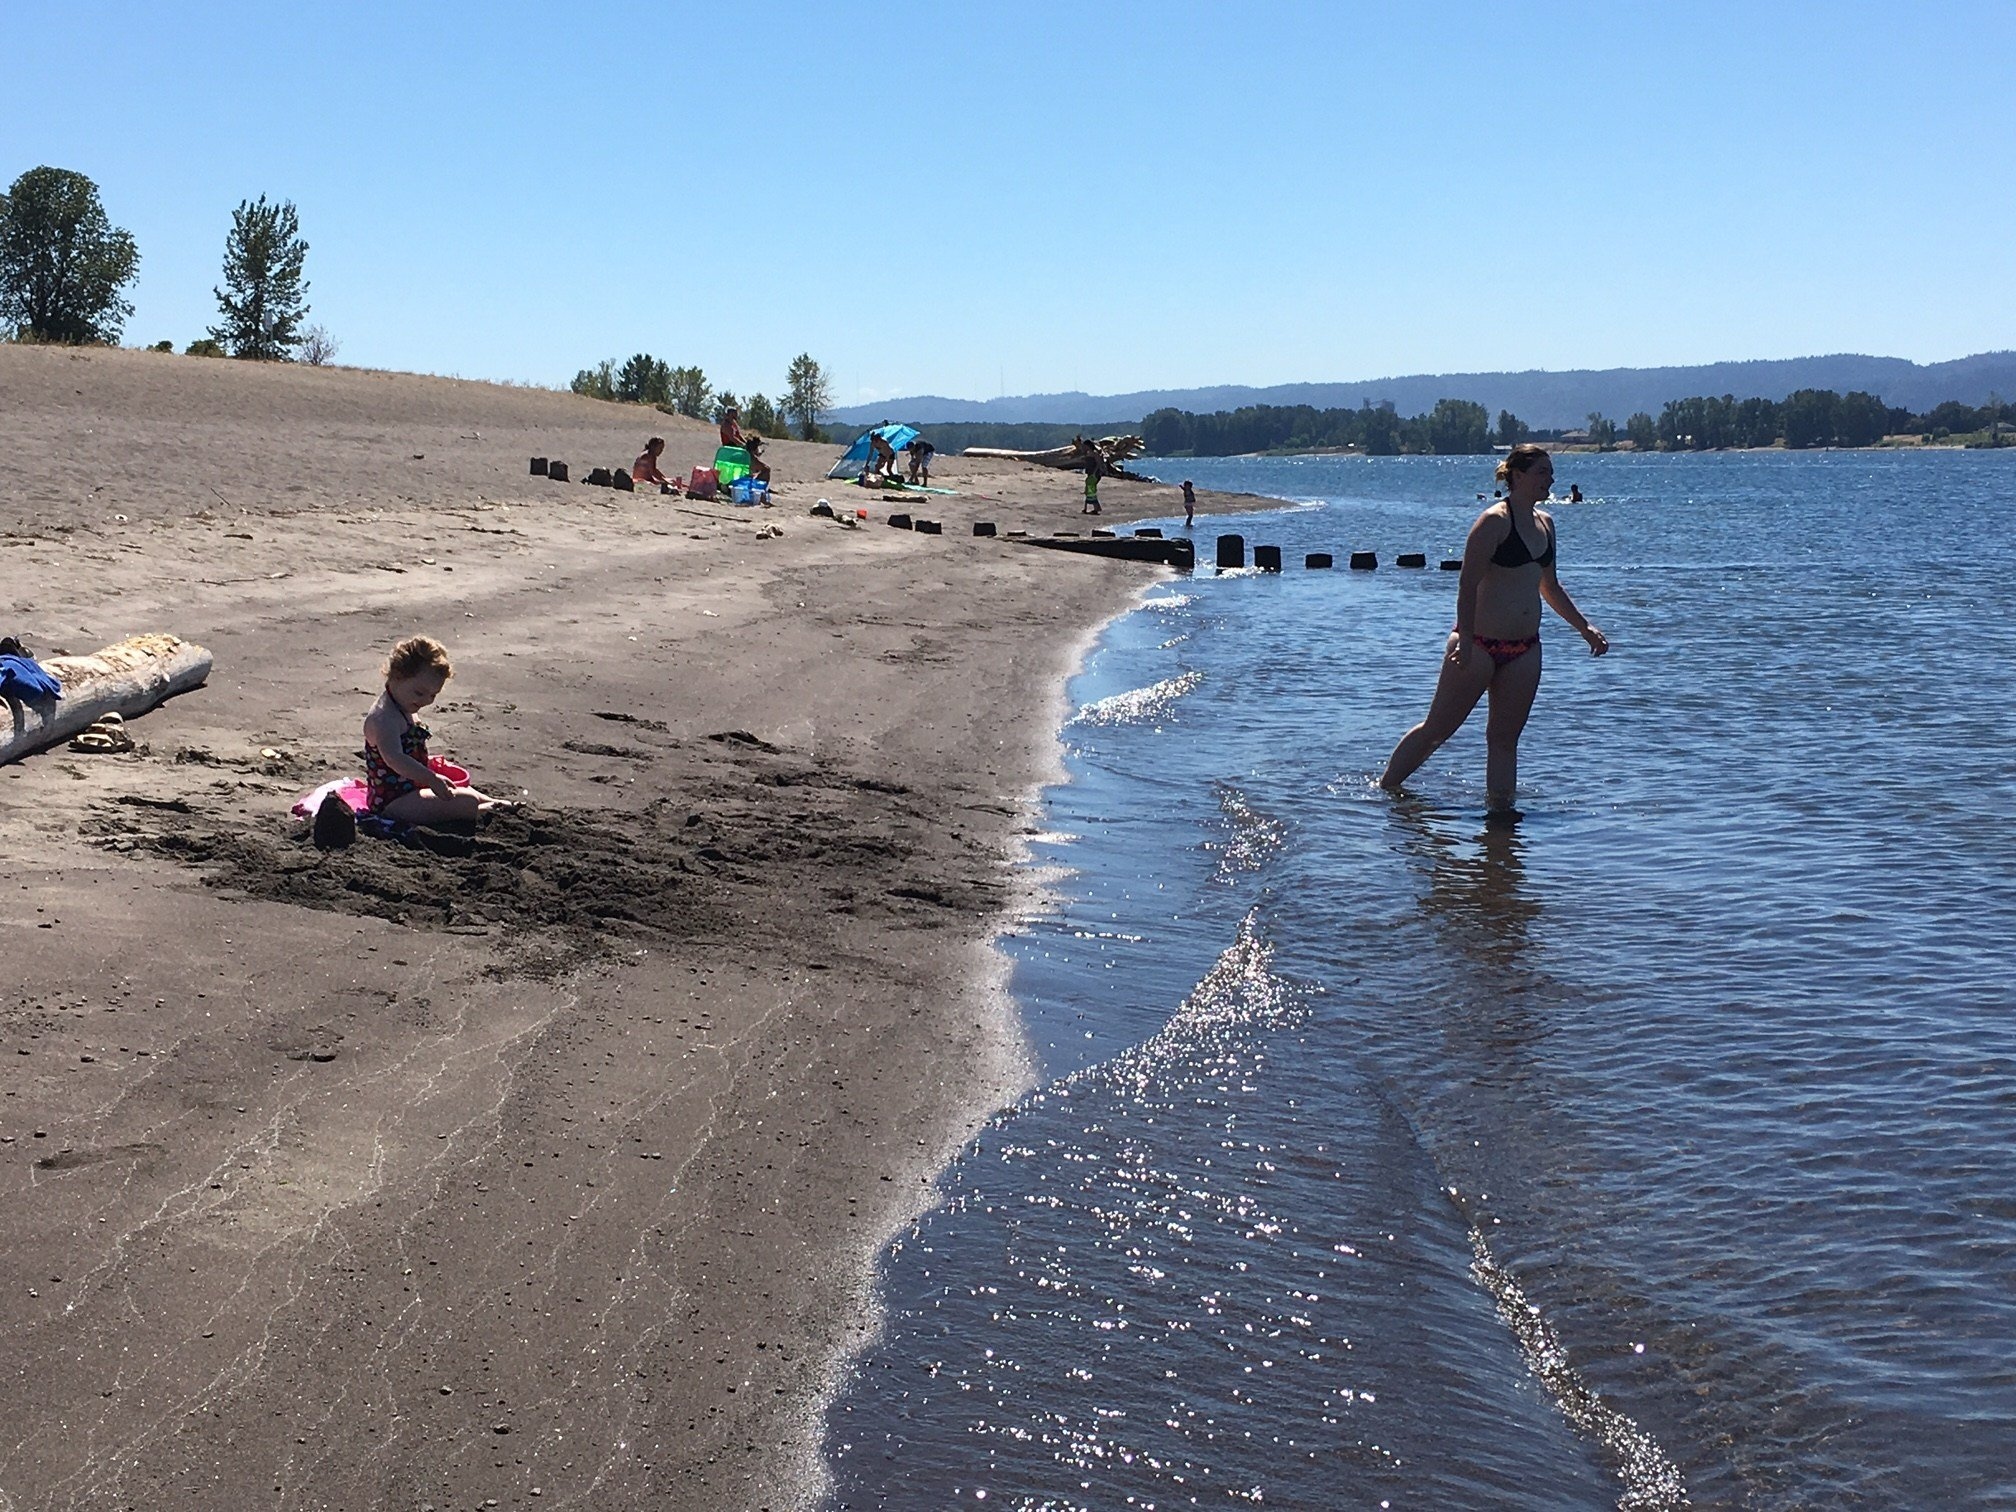 People enjoying the Columbia River at Frenchman's Bar northwest of Vancouver.